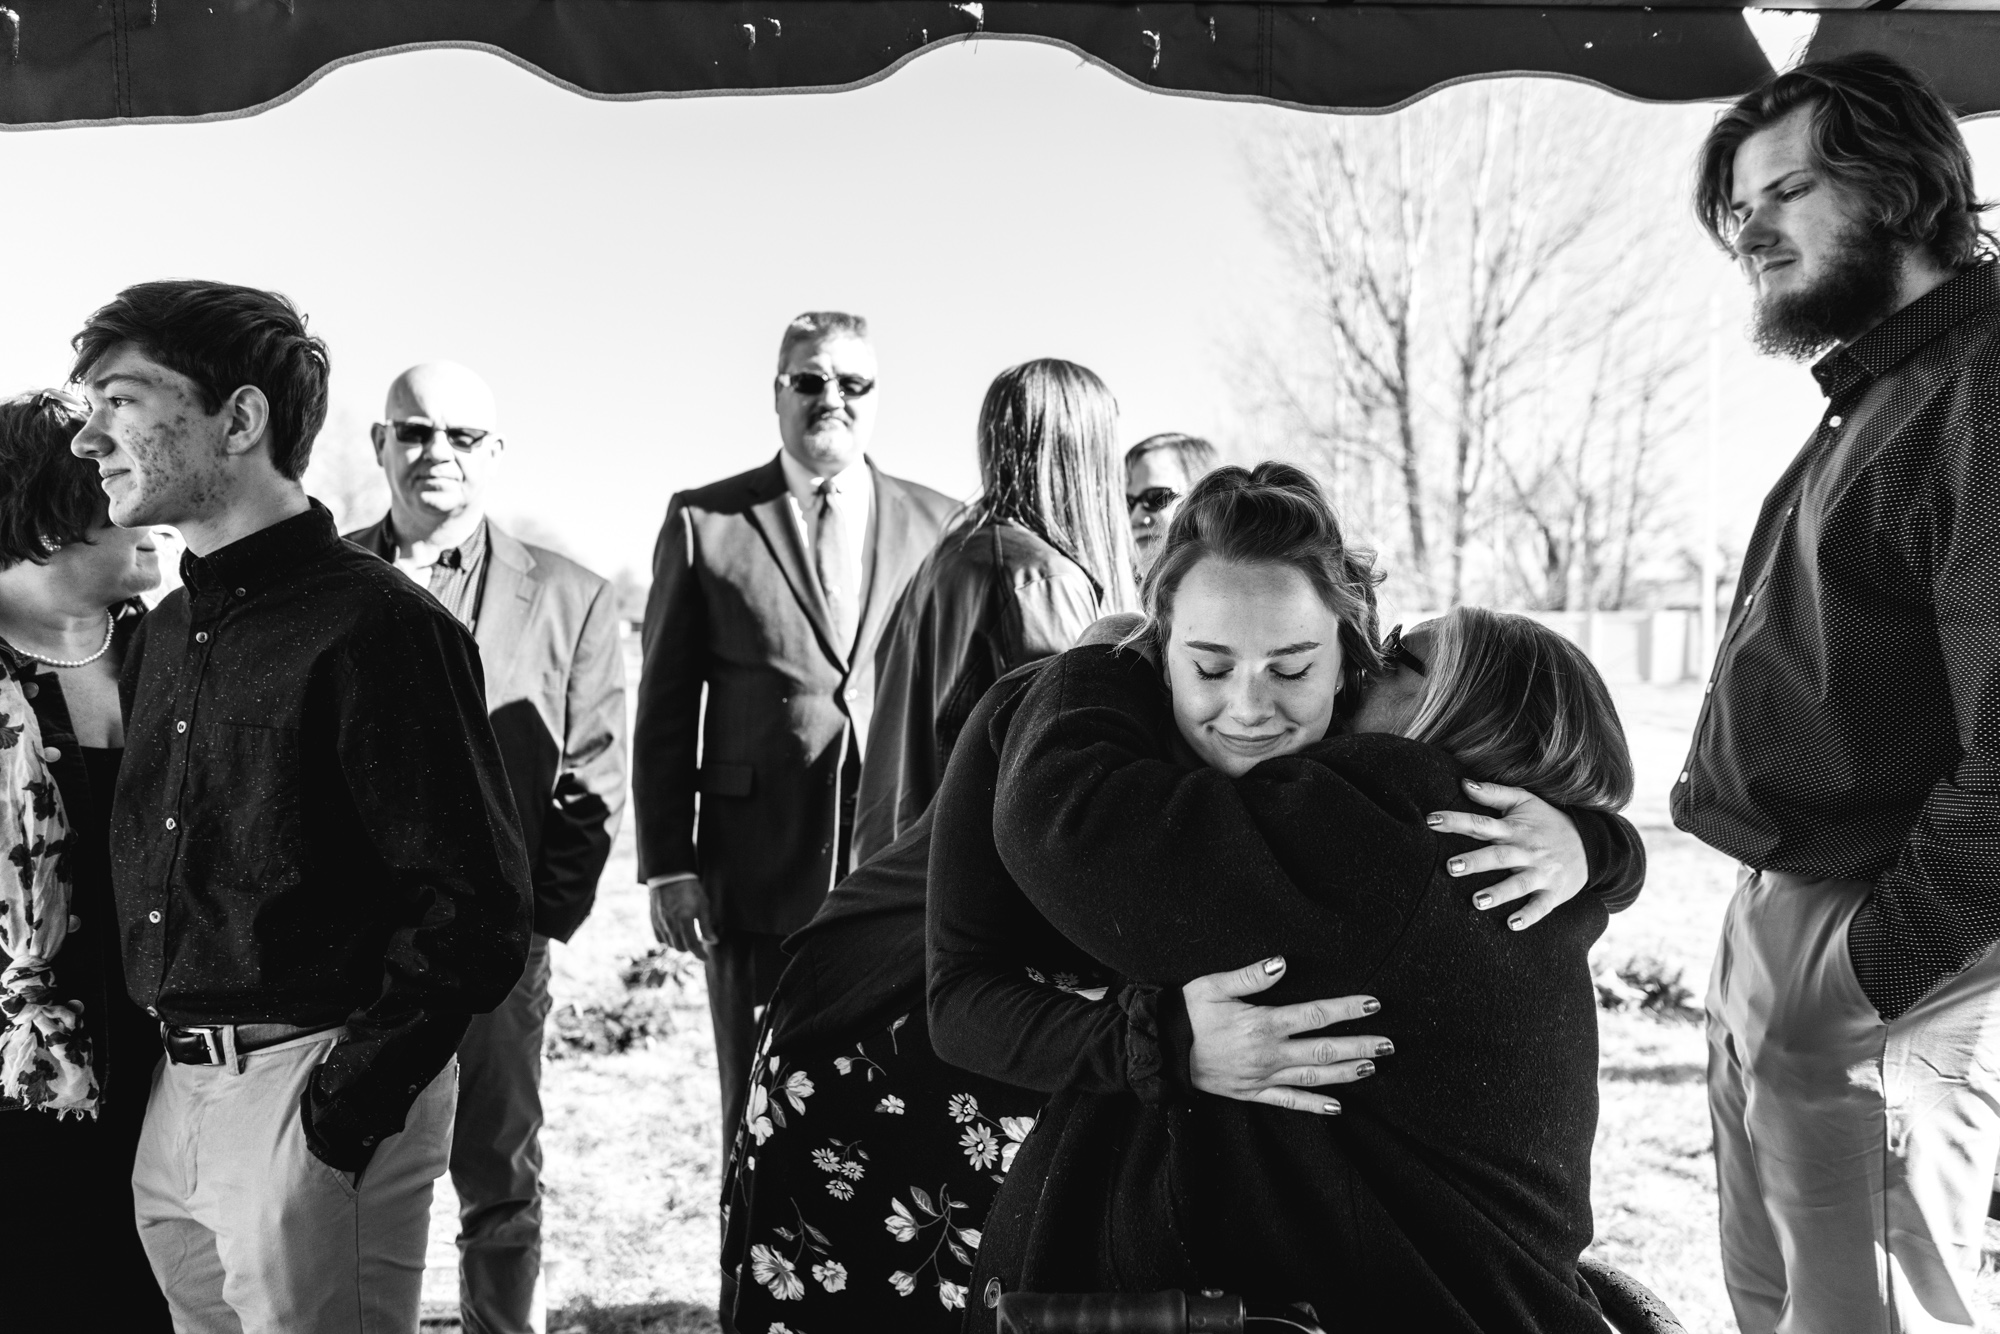 Family members embrace during a funeral service for Barbara Richard in Greeley, Colorado